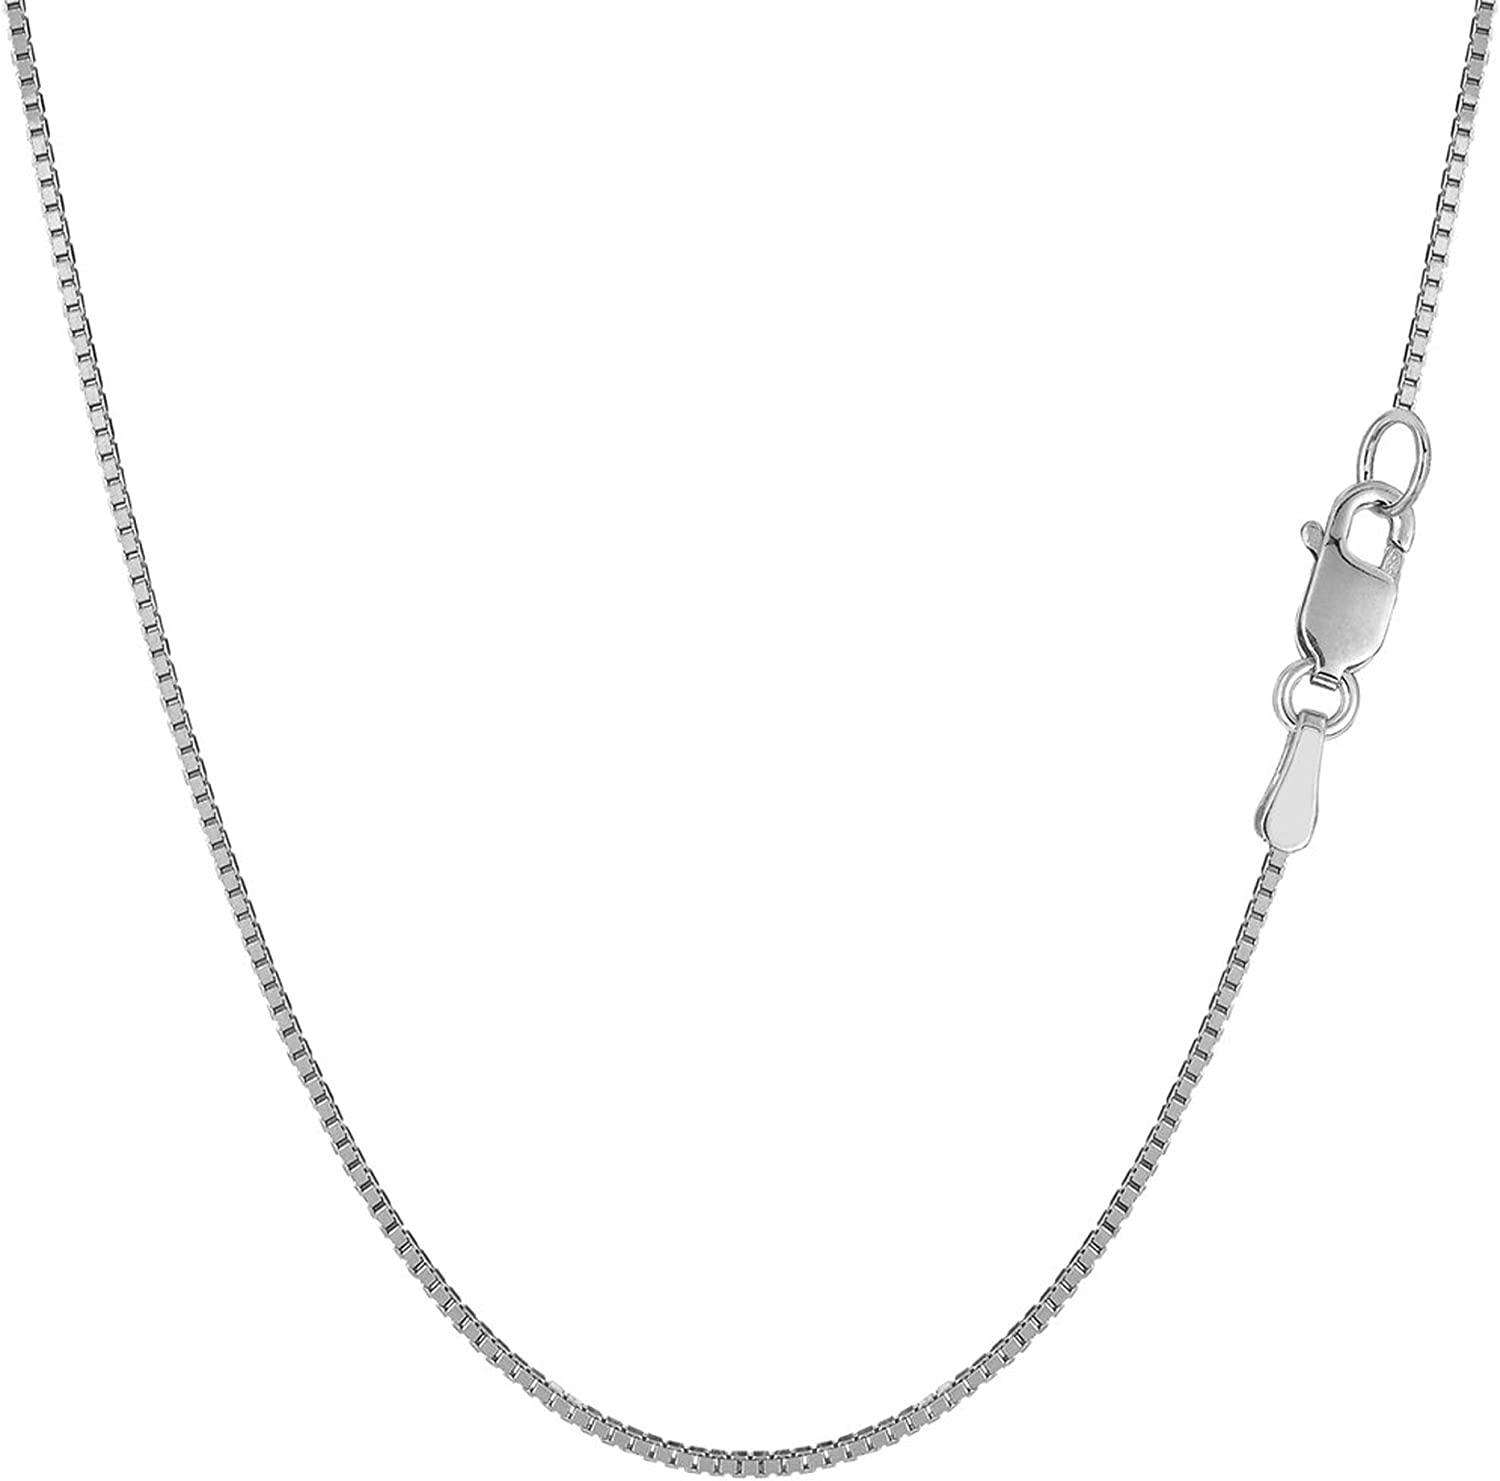 1.4mm 2.3mm 1.8mm R/&R Sterling Silver Rhodium Plated Diamond-Cut Rope Chain Necklace